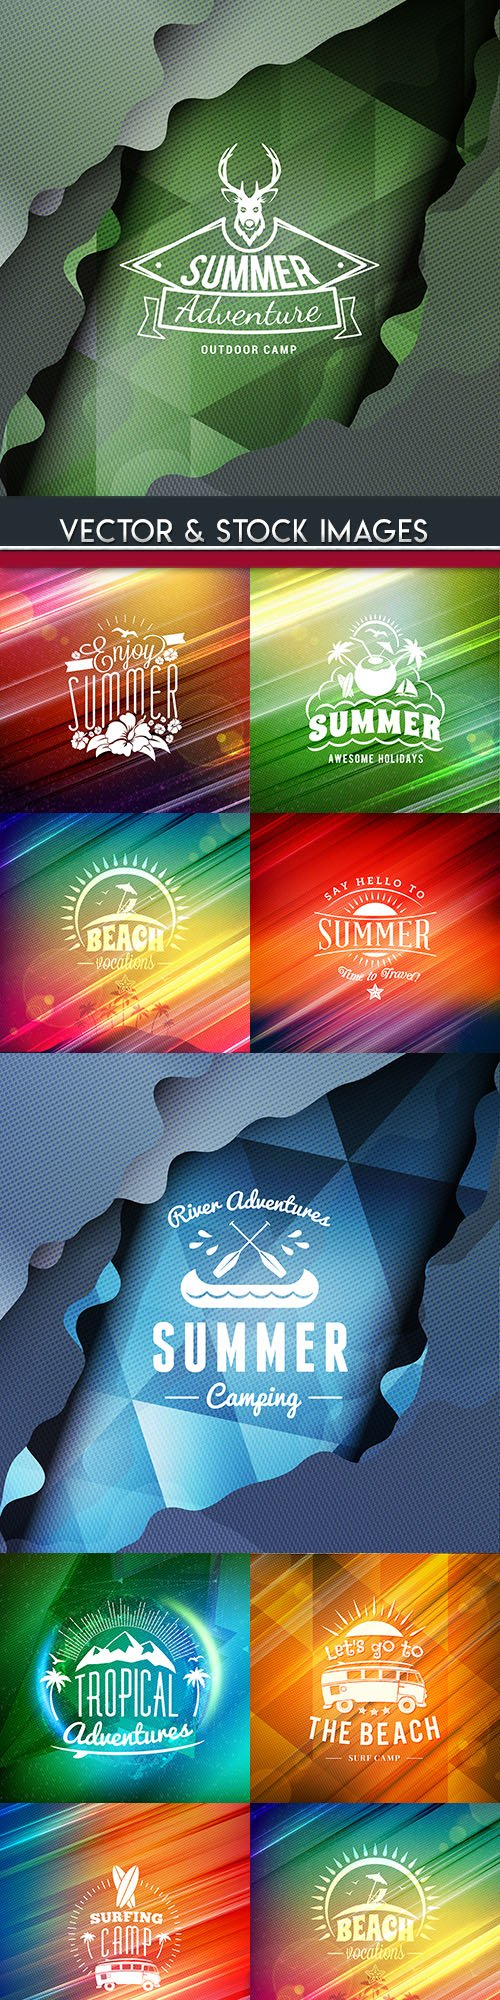 Summer tropical hipster holiday illustration banner